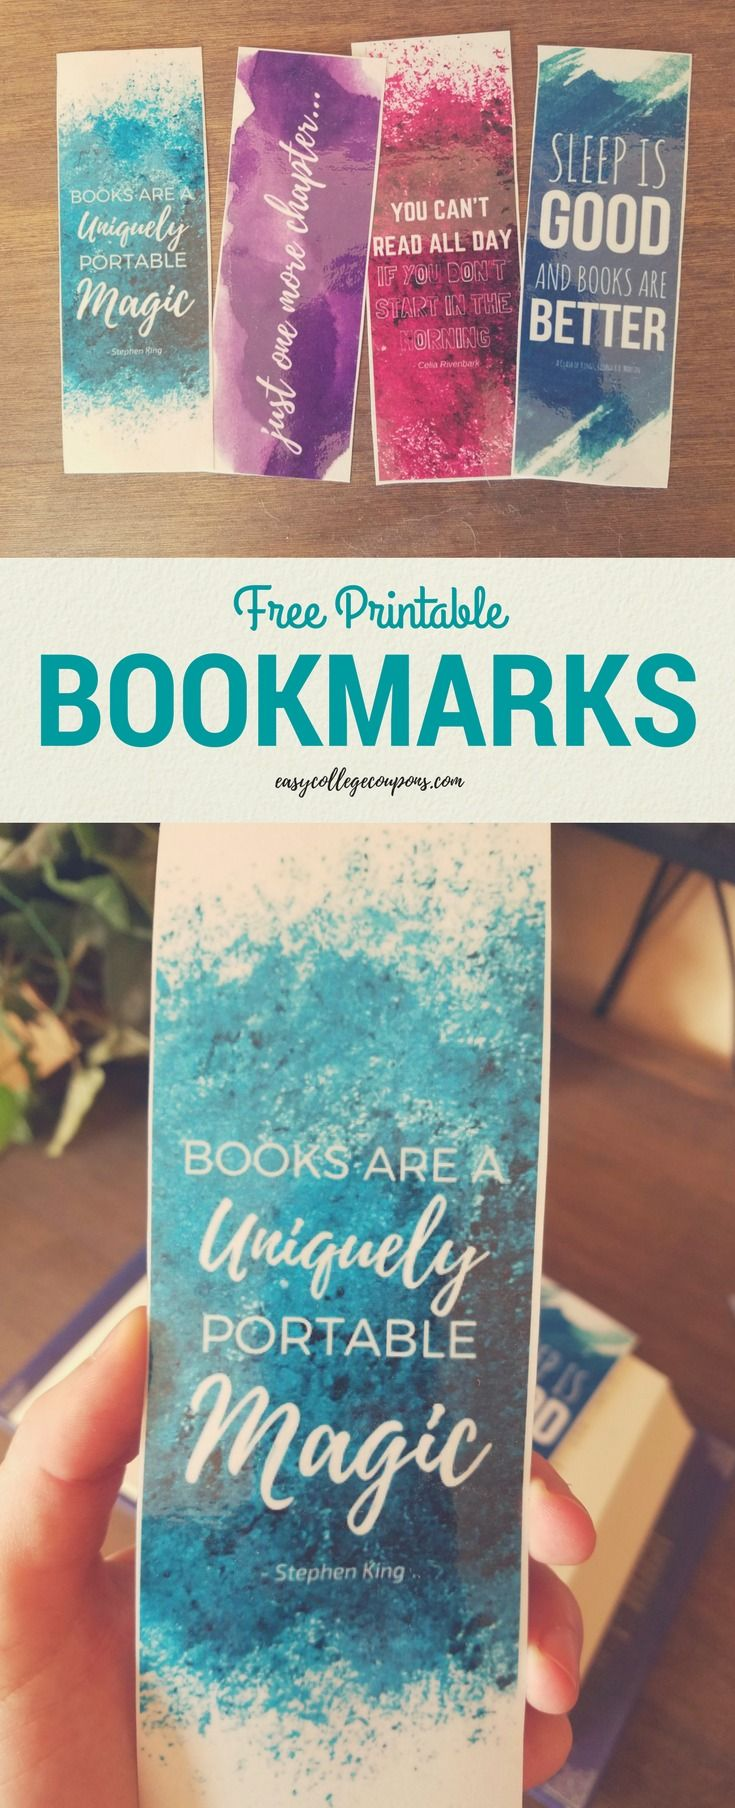 photograph about Free Printable Bookmarks With Quotes titled Pin upon Bookmarks